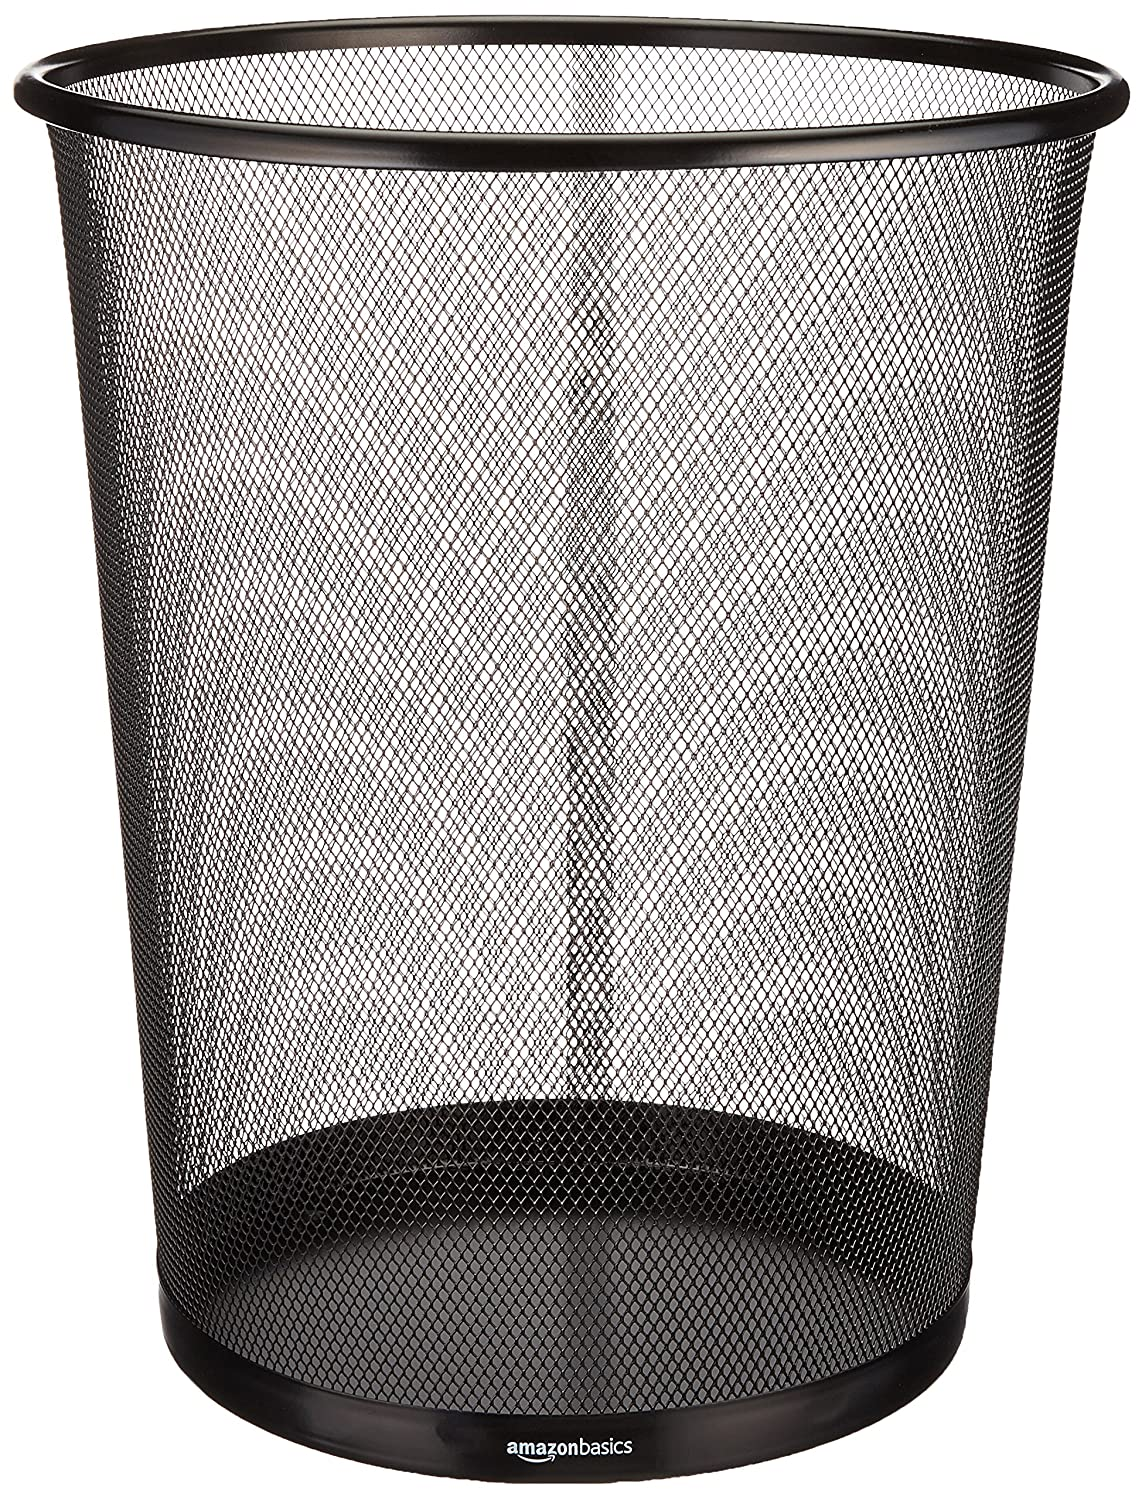 AmazonBasics Mesh Wastebasket, Black, 6-Pack